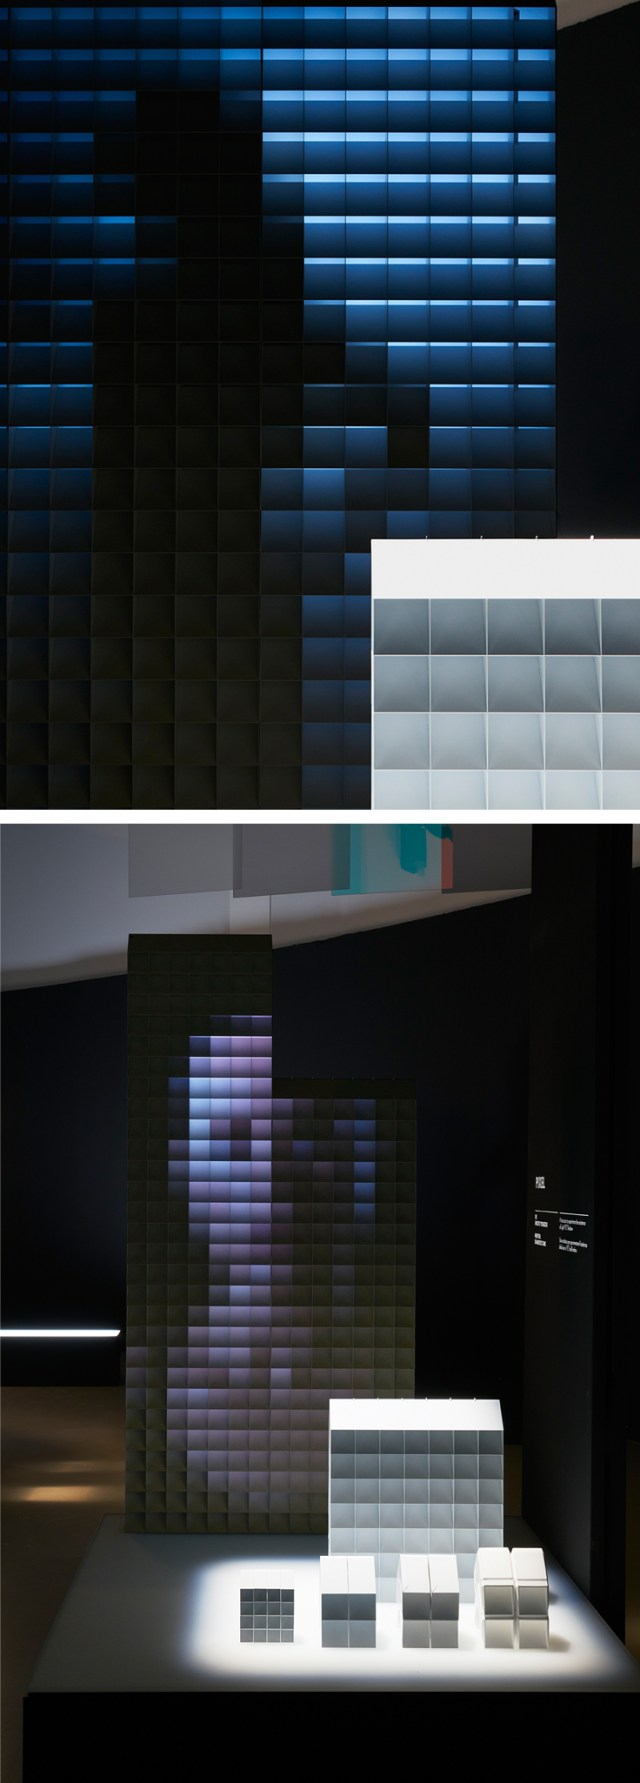 Lexus judges chose PIXEL - a configuration of visors that alternate their appearance in tandem with the viewer's movements and perspective - as the Grand Prix winner due to it's imaginative exploration of two seemingly contrasting elements: Light and Shadow. This idea would have many applications, from architectural facades, privacy screens in the home and office, theatre sets, exhibitions etc. and could be scaled up or down and fabricated from a wide range of materials such as cardboard, sheet metal or ceramic. Seemingly simple but flawless in execution. PIXEL | Designer: Hiroto Yoshizoe | Mentored by Snarkitecture | Lexus Design Award 2017 | Milan Design Week | La Triennale di Milano | Awesome Products #product_design